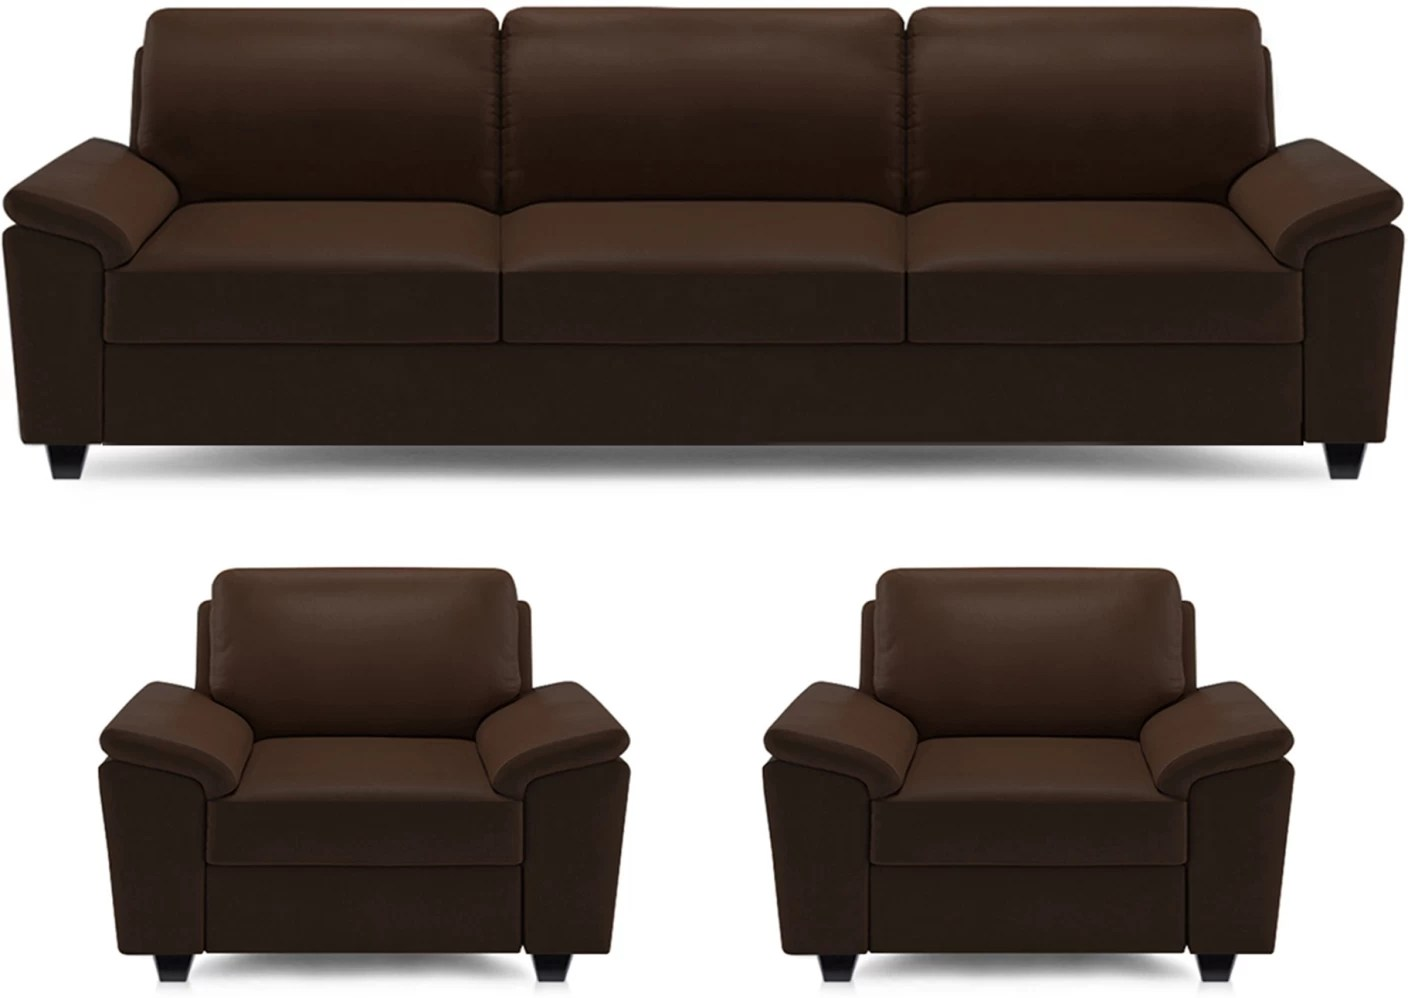 Sofa Set Price In Jagdalpur Dolphin Oxford Leatherette 3 43 1 43 1 Brown Sofa Set Price